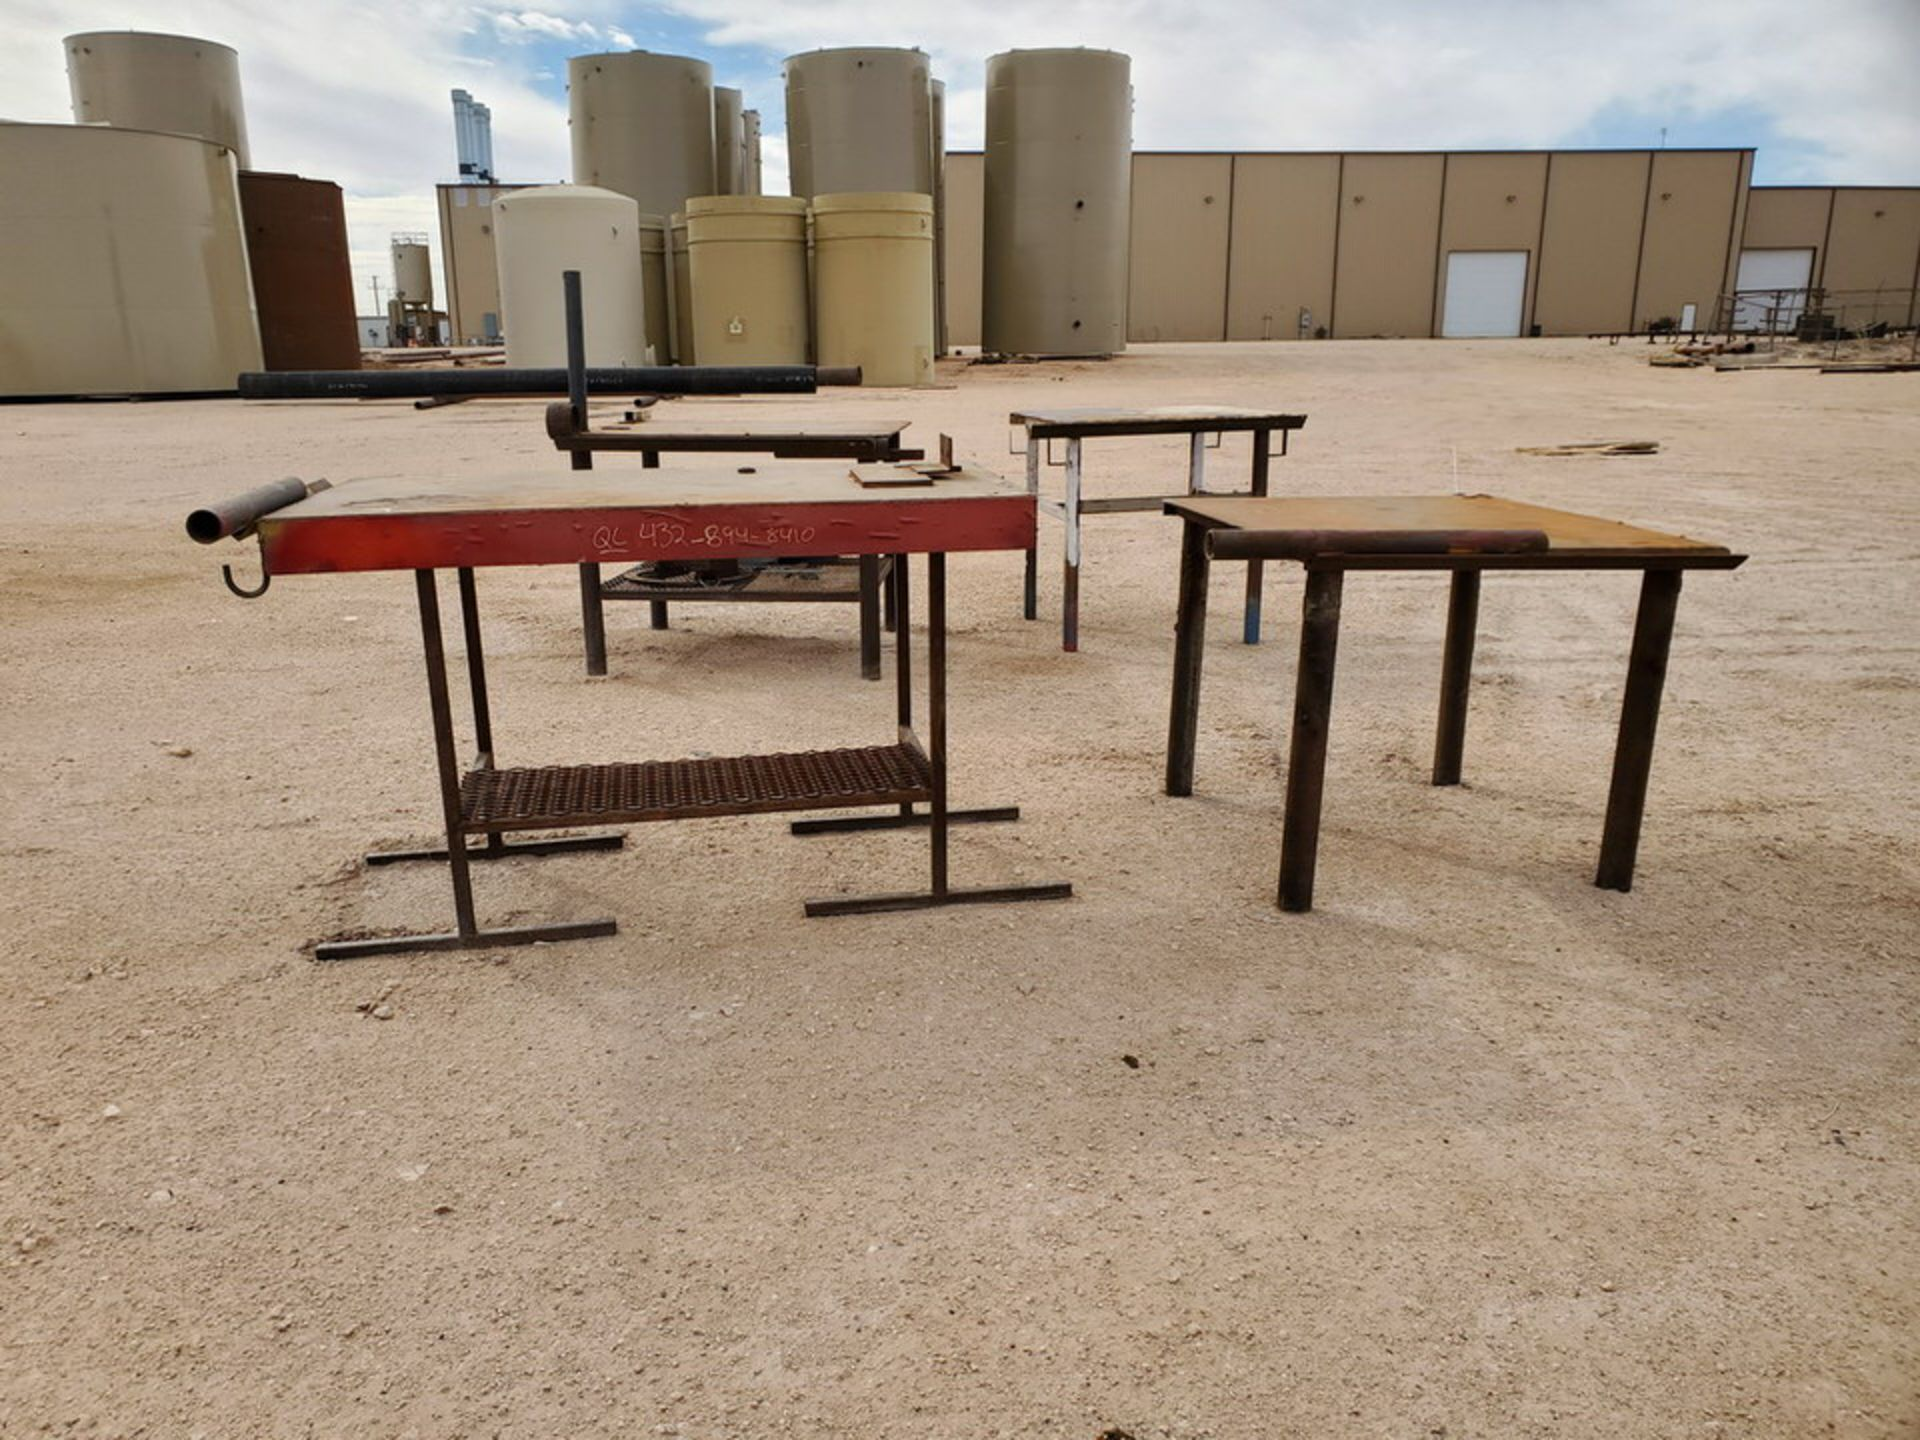 """(2) Stl Welding Tables (1) 36"""" x 43"""" x 30"""", (1) 60"""" x 29"""" 36"""" - Image 3 of 6"""